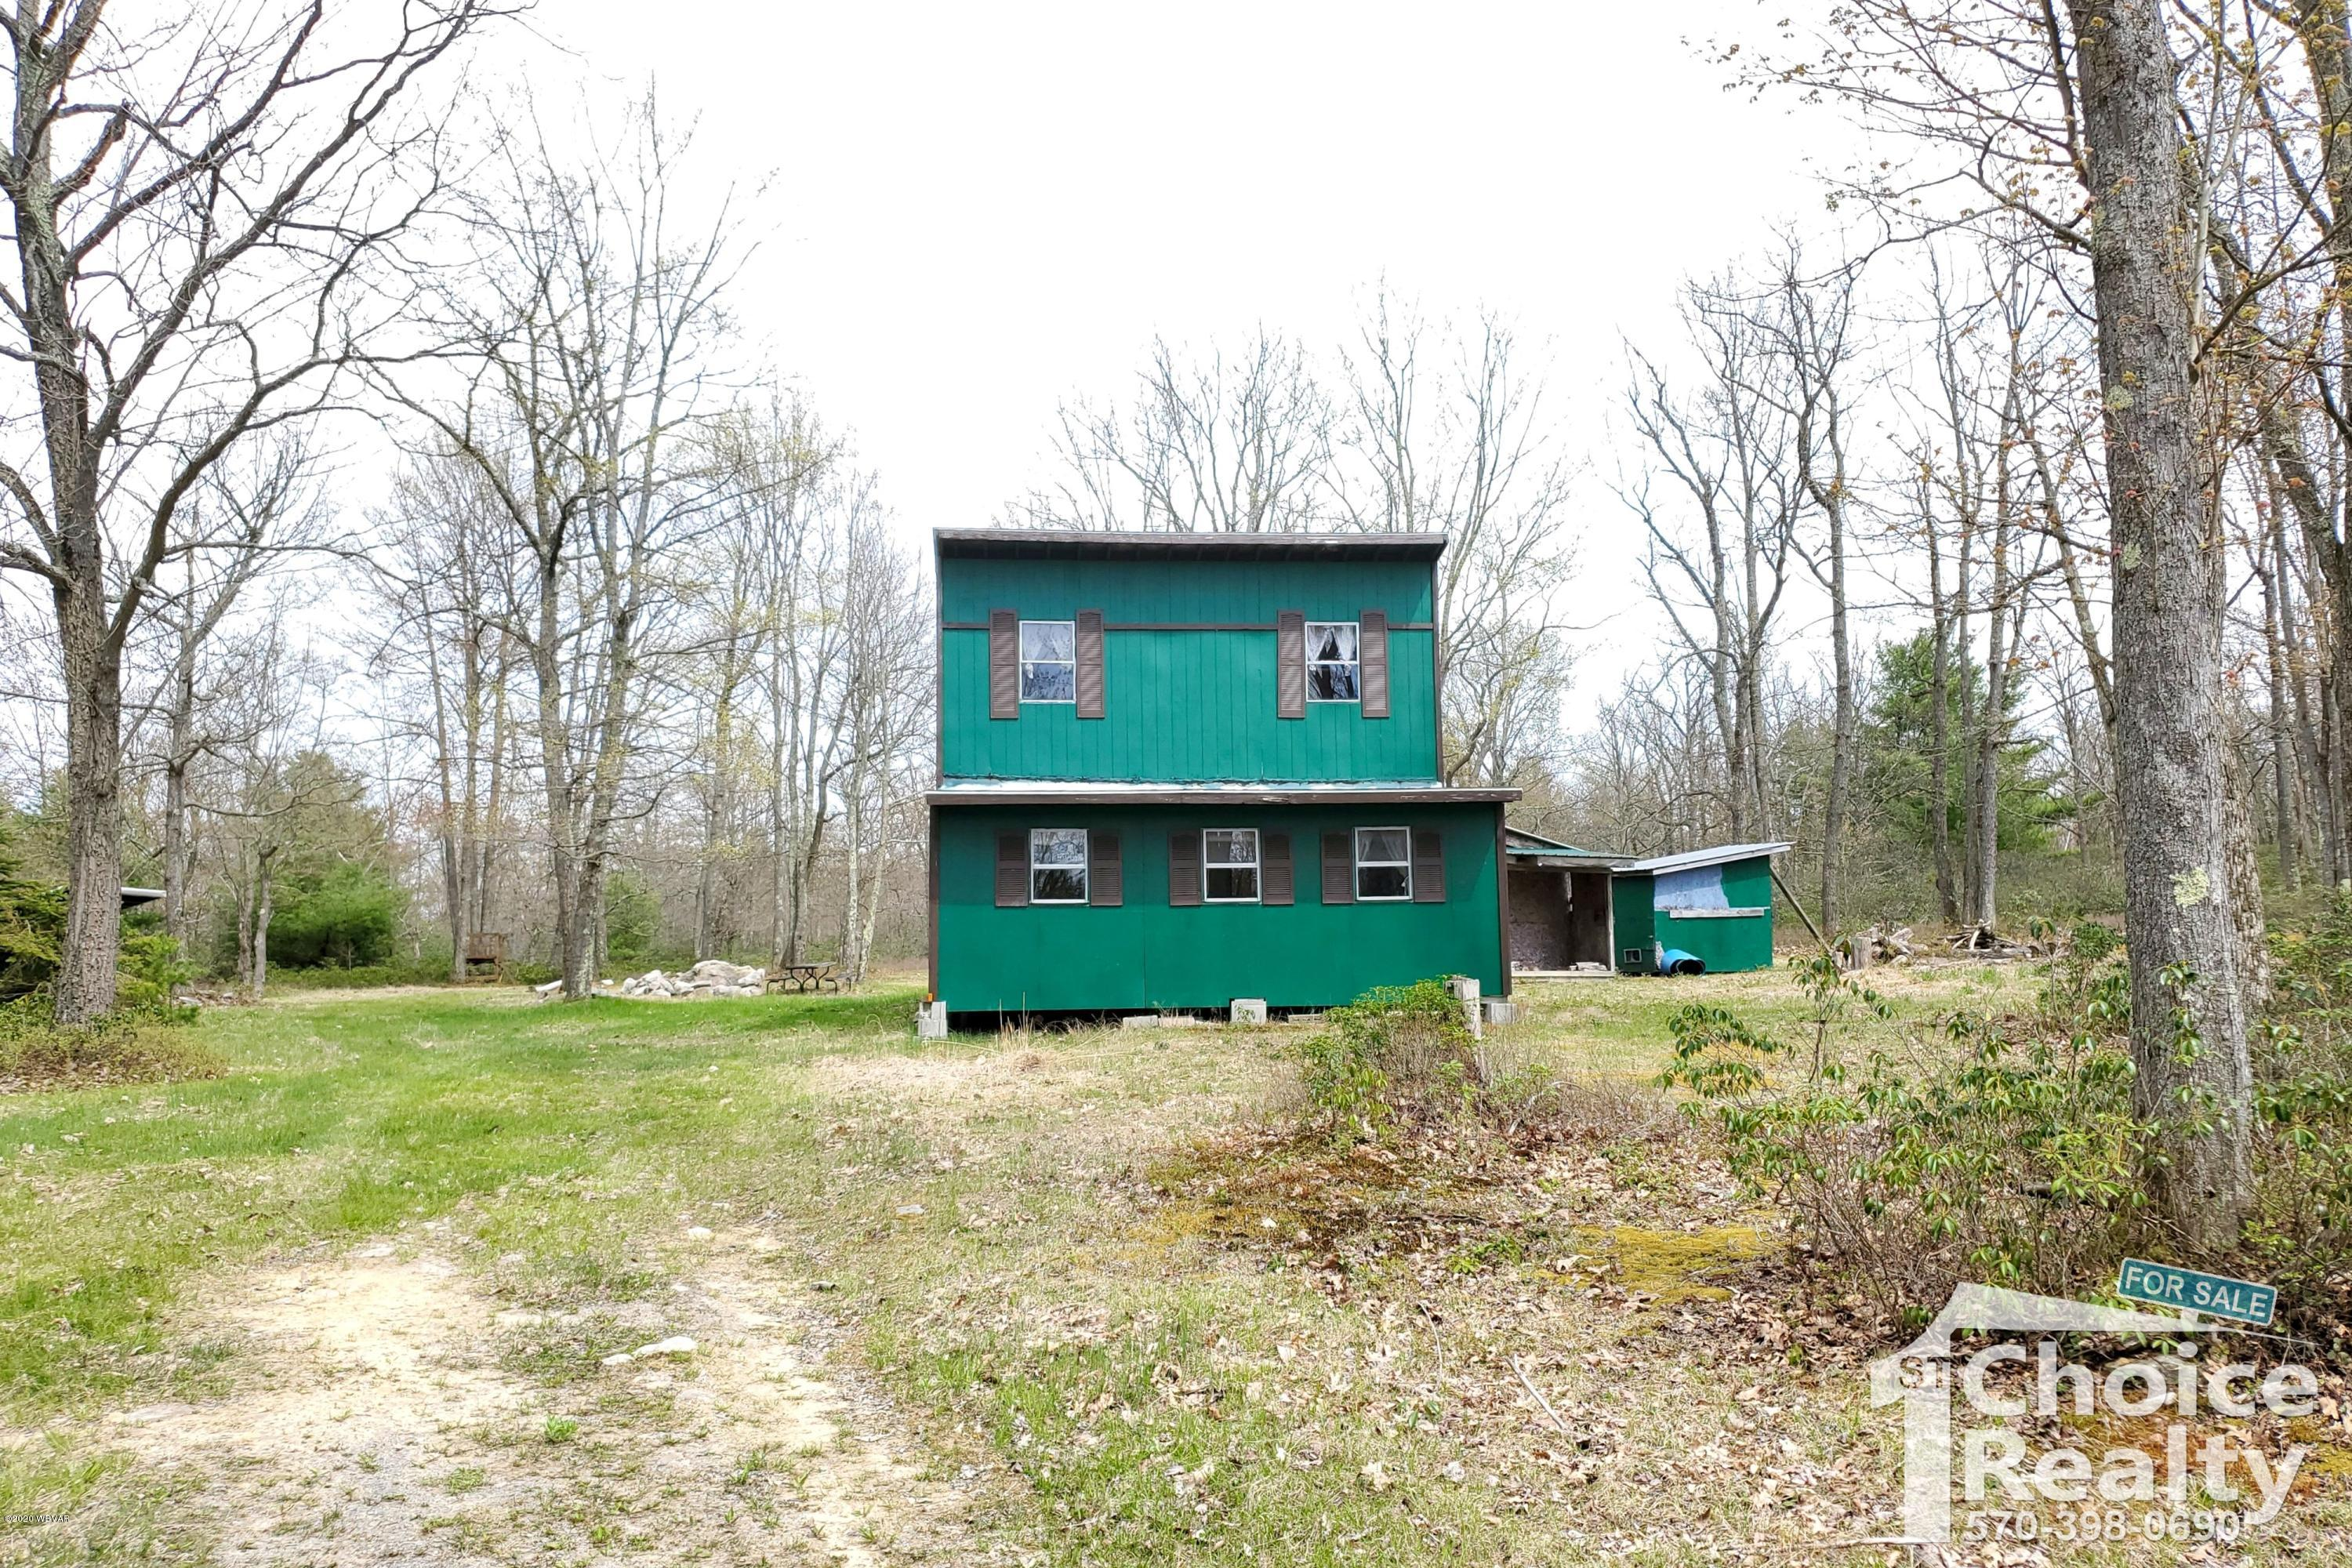 232 LINGLE TRAIL,Beech Creek,PA 16822,2 Bedrooms Bedrooms,Cabin/vacation home,LINGLE,WB-90183